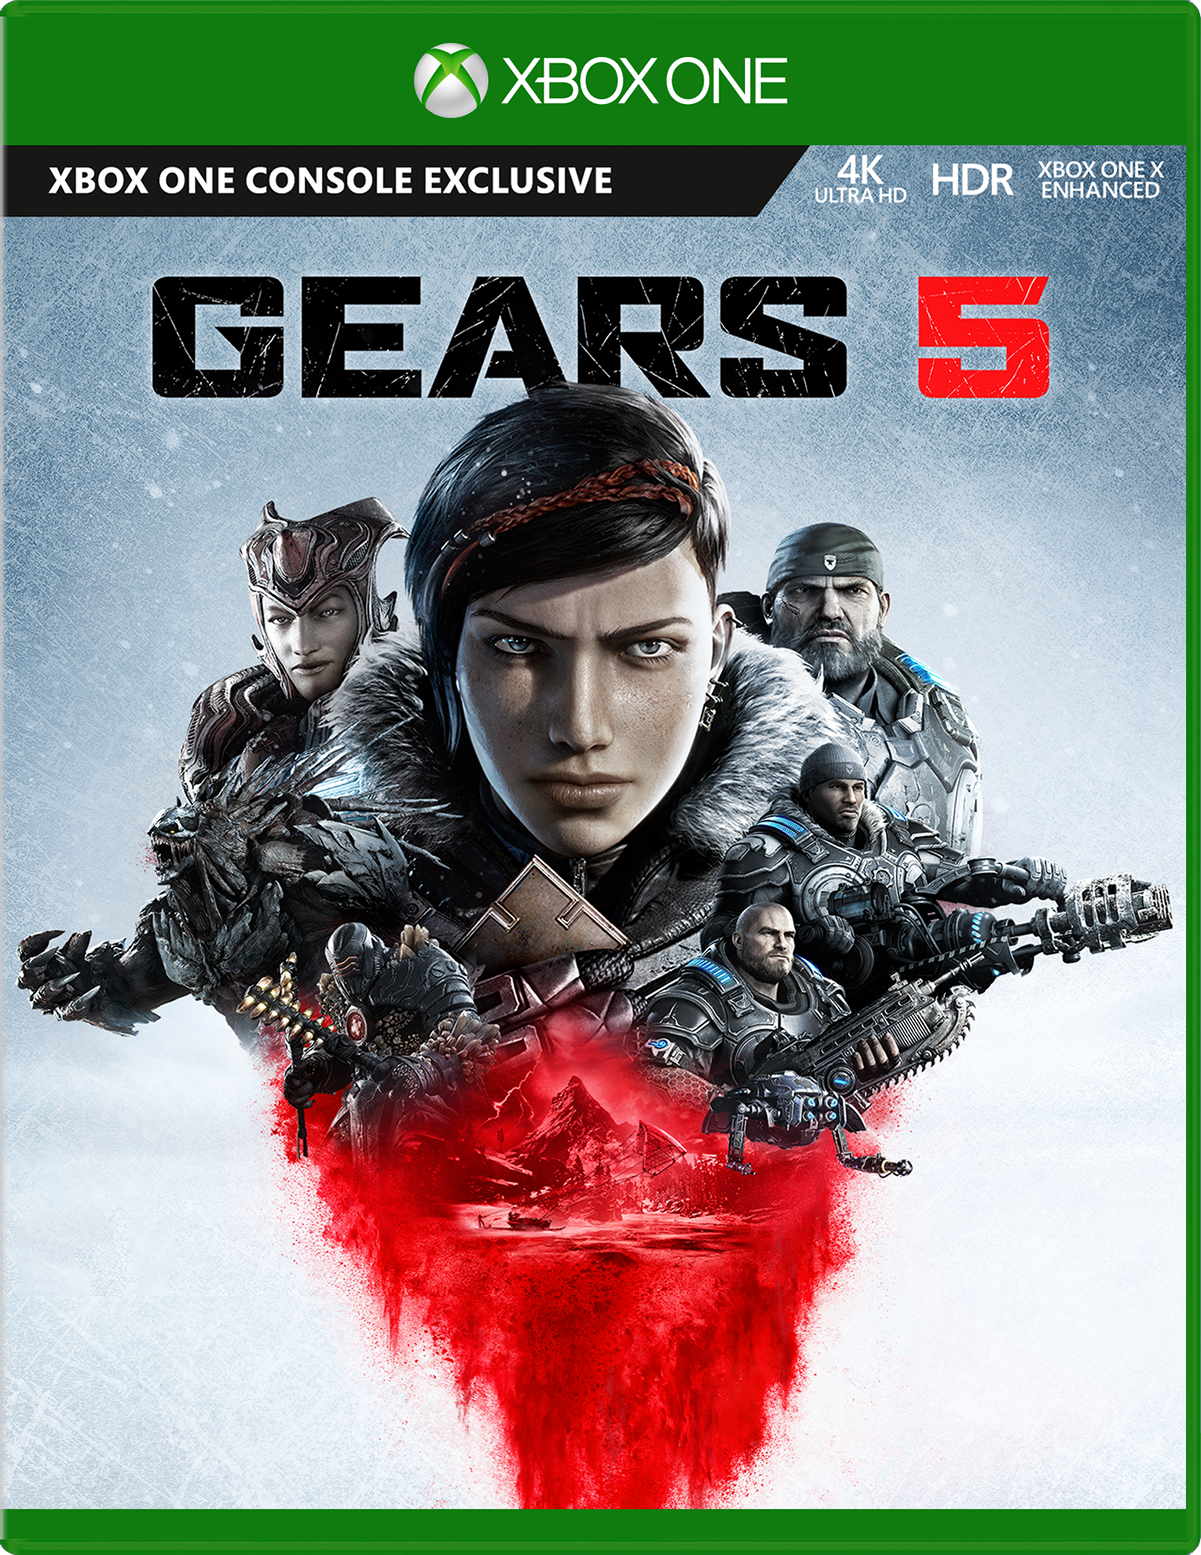 RE37Bcj?ver=a1ae - Gears 5 Standard Edition for Xbox One